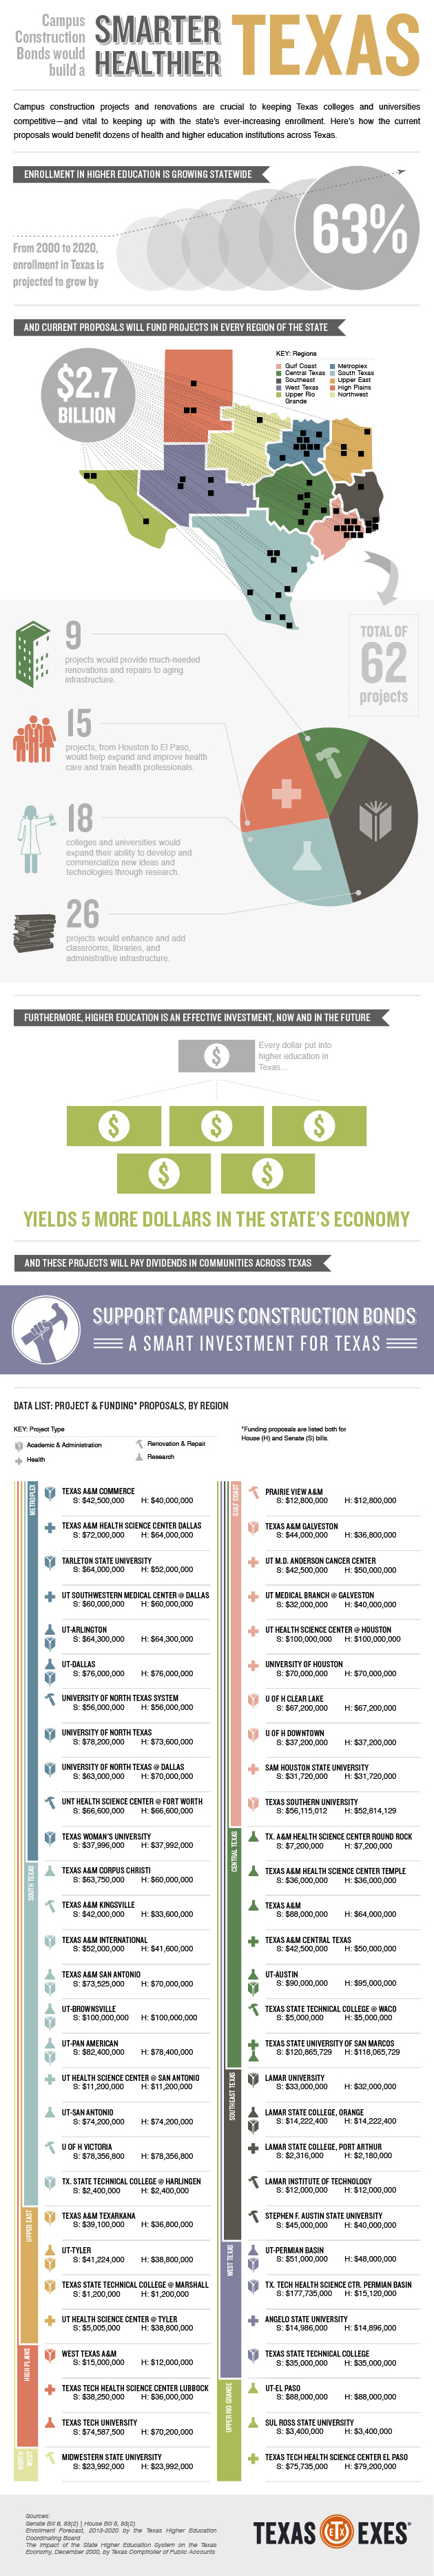 Campus Construction Bonds Would Mean a Smarter, Healthier Texas Infographic